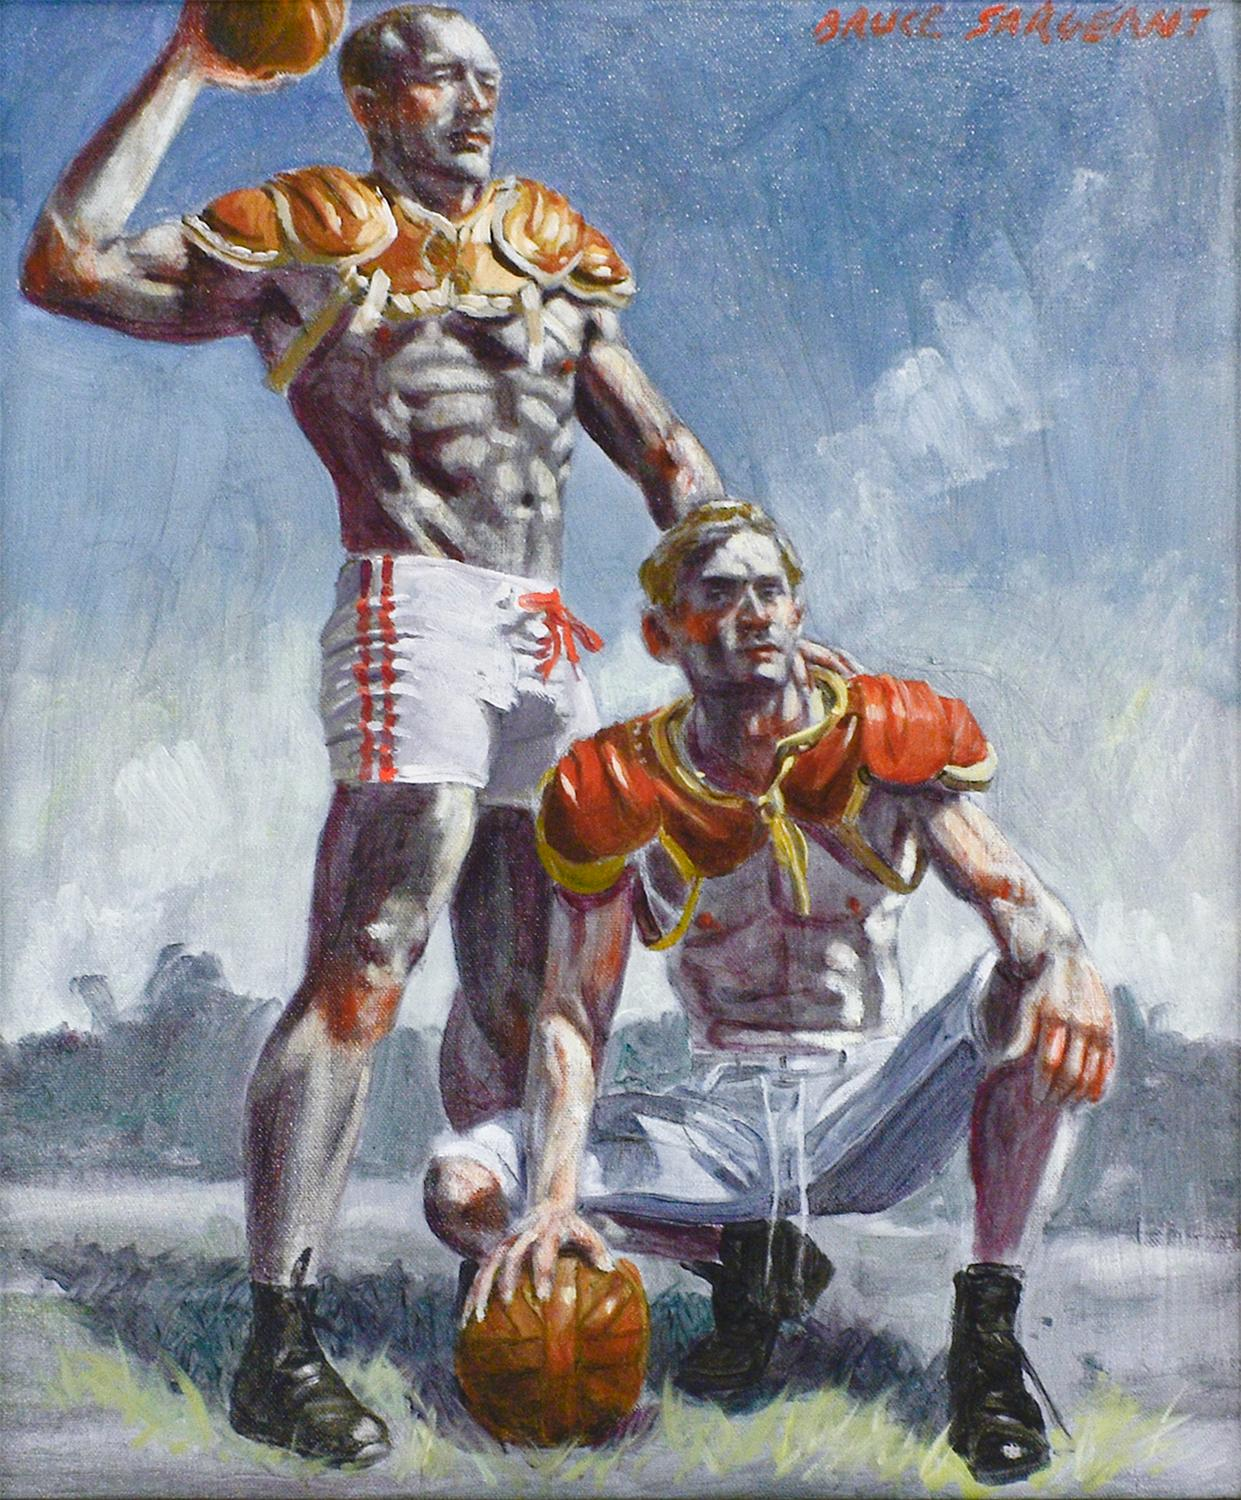 Football Players (Framed Academic Style Figurative Painting of Male Athletes)